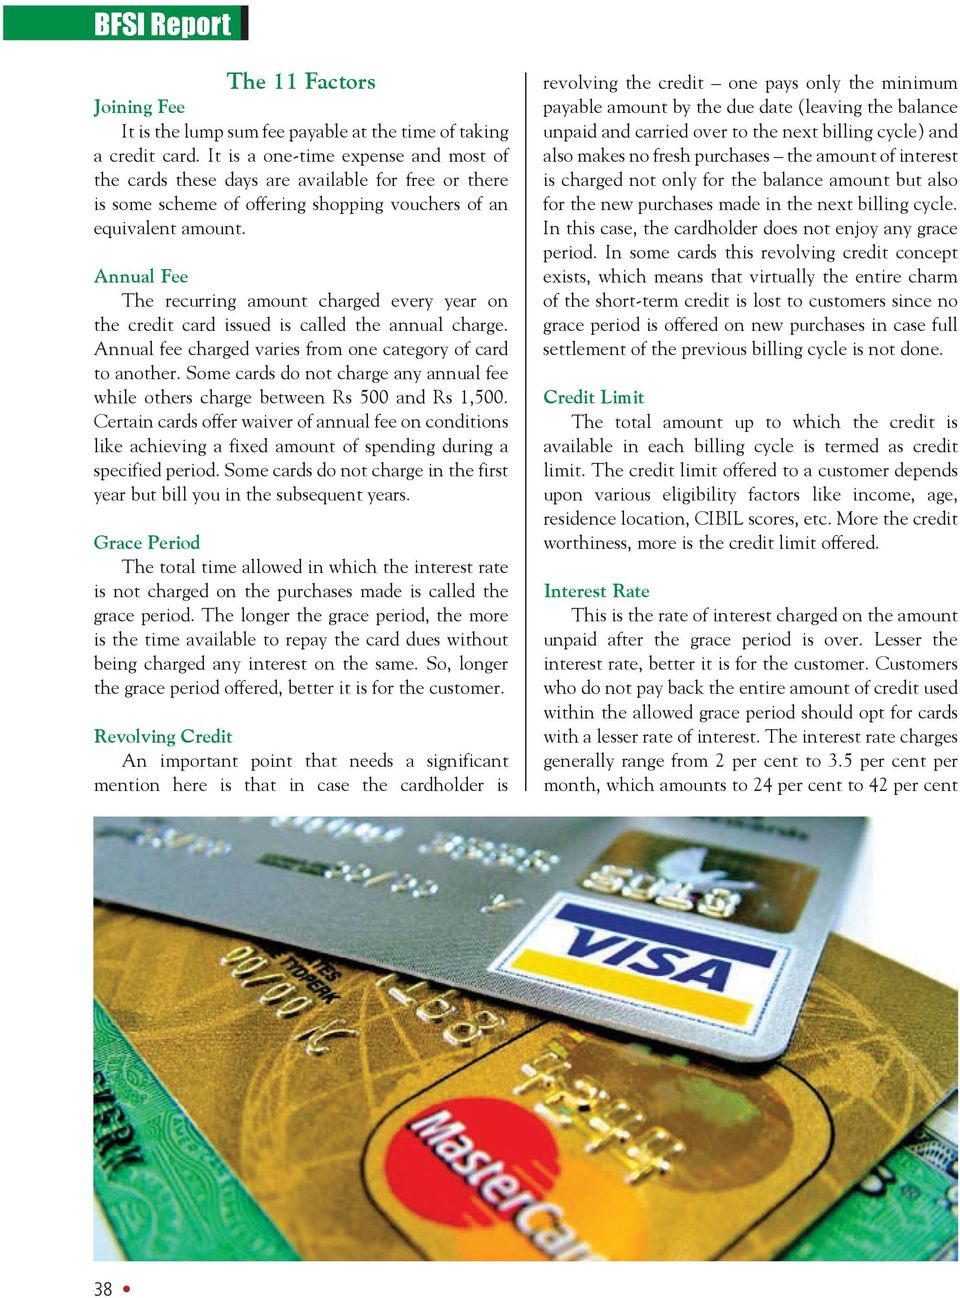 Annual Fee The recurring amount charged every year on the credit card issued is called the annual charge. Annual fee charged varies from one category of card to another.